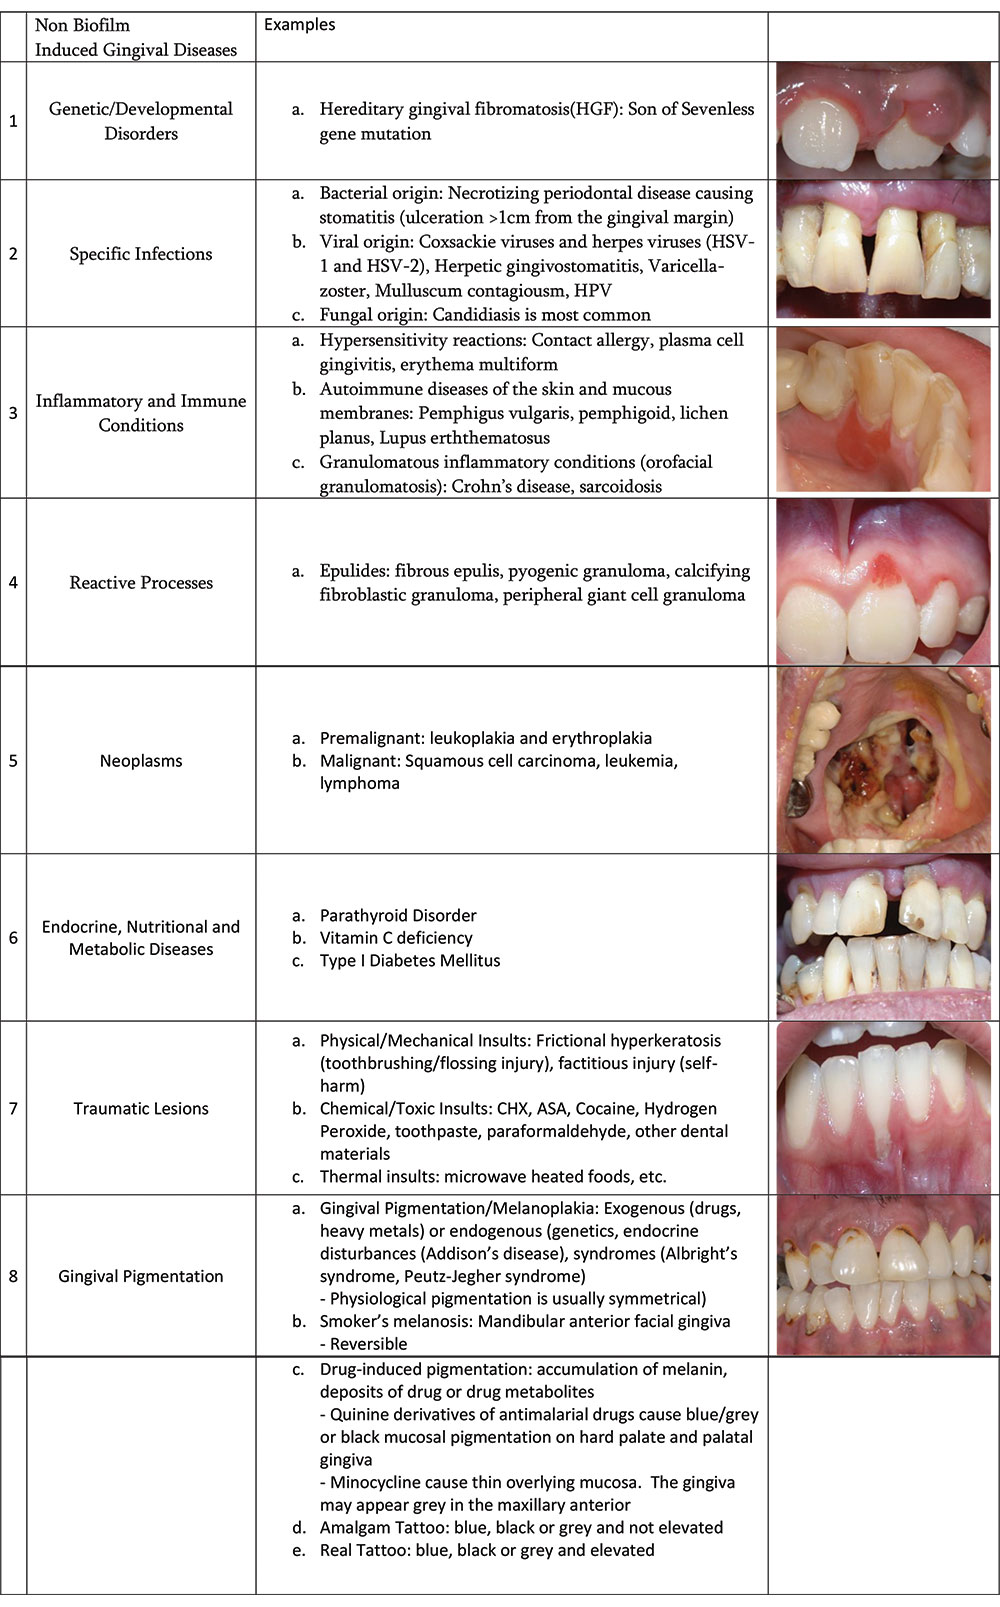 The New Global Classification System for Periodontal and Peri-Implant Diseases